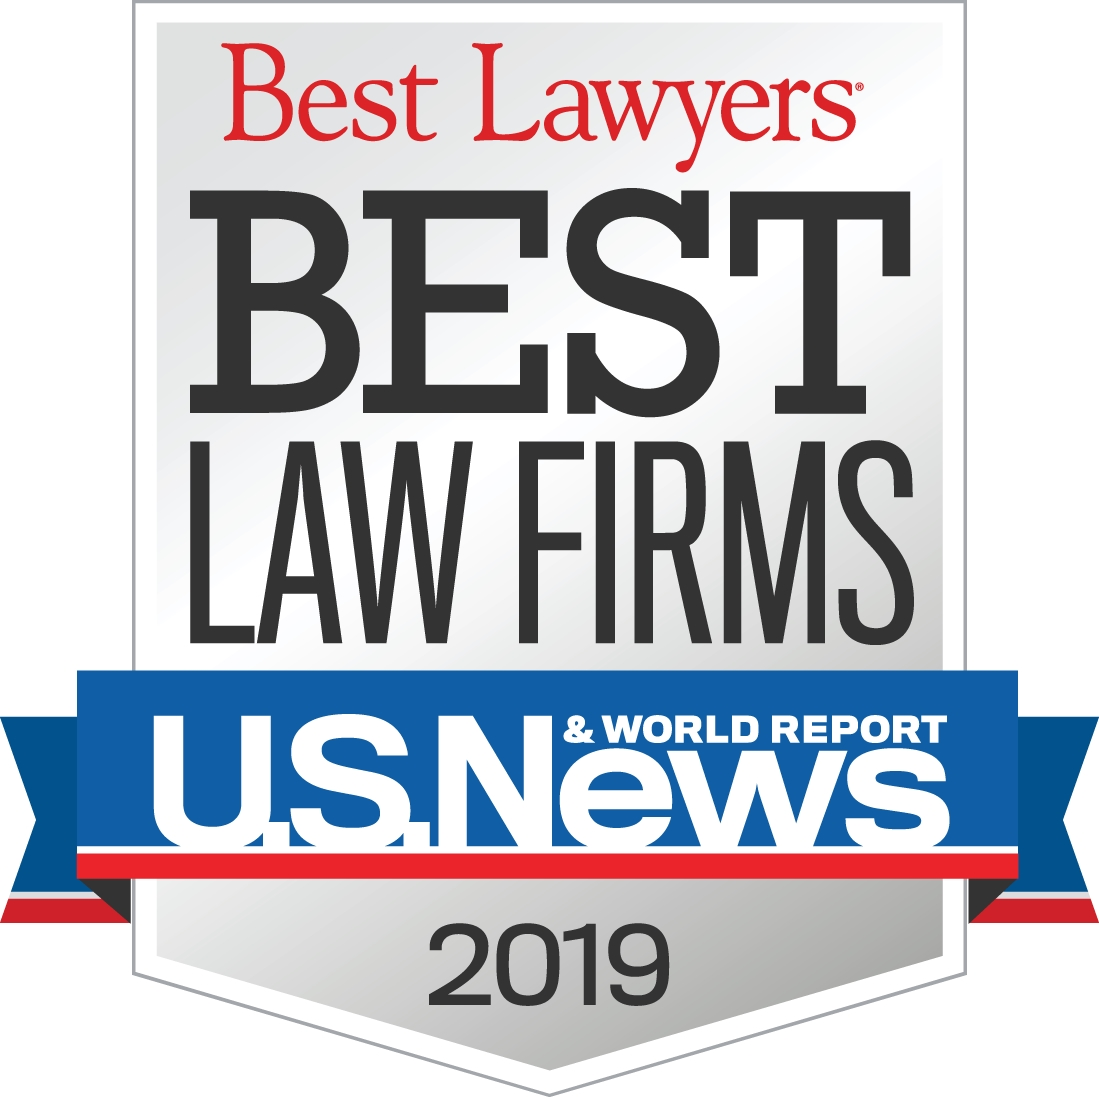 Our Phoenix law firm was voted Best Law Firms 2019 by Best Lawyers and U.S. News & World Report